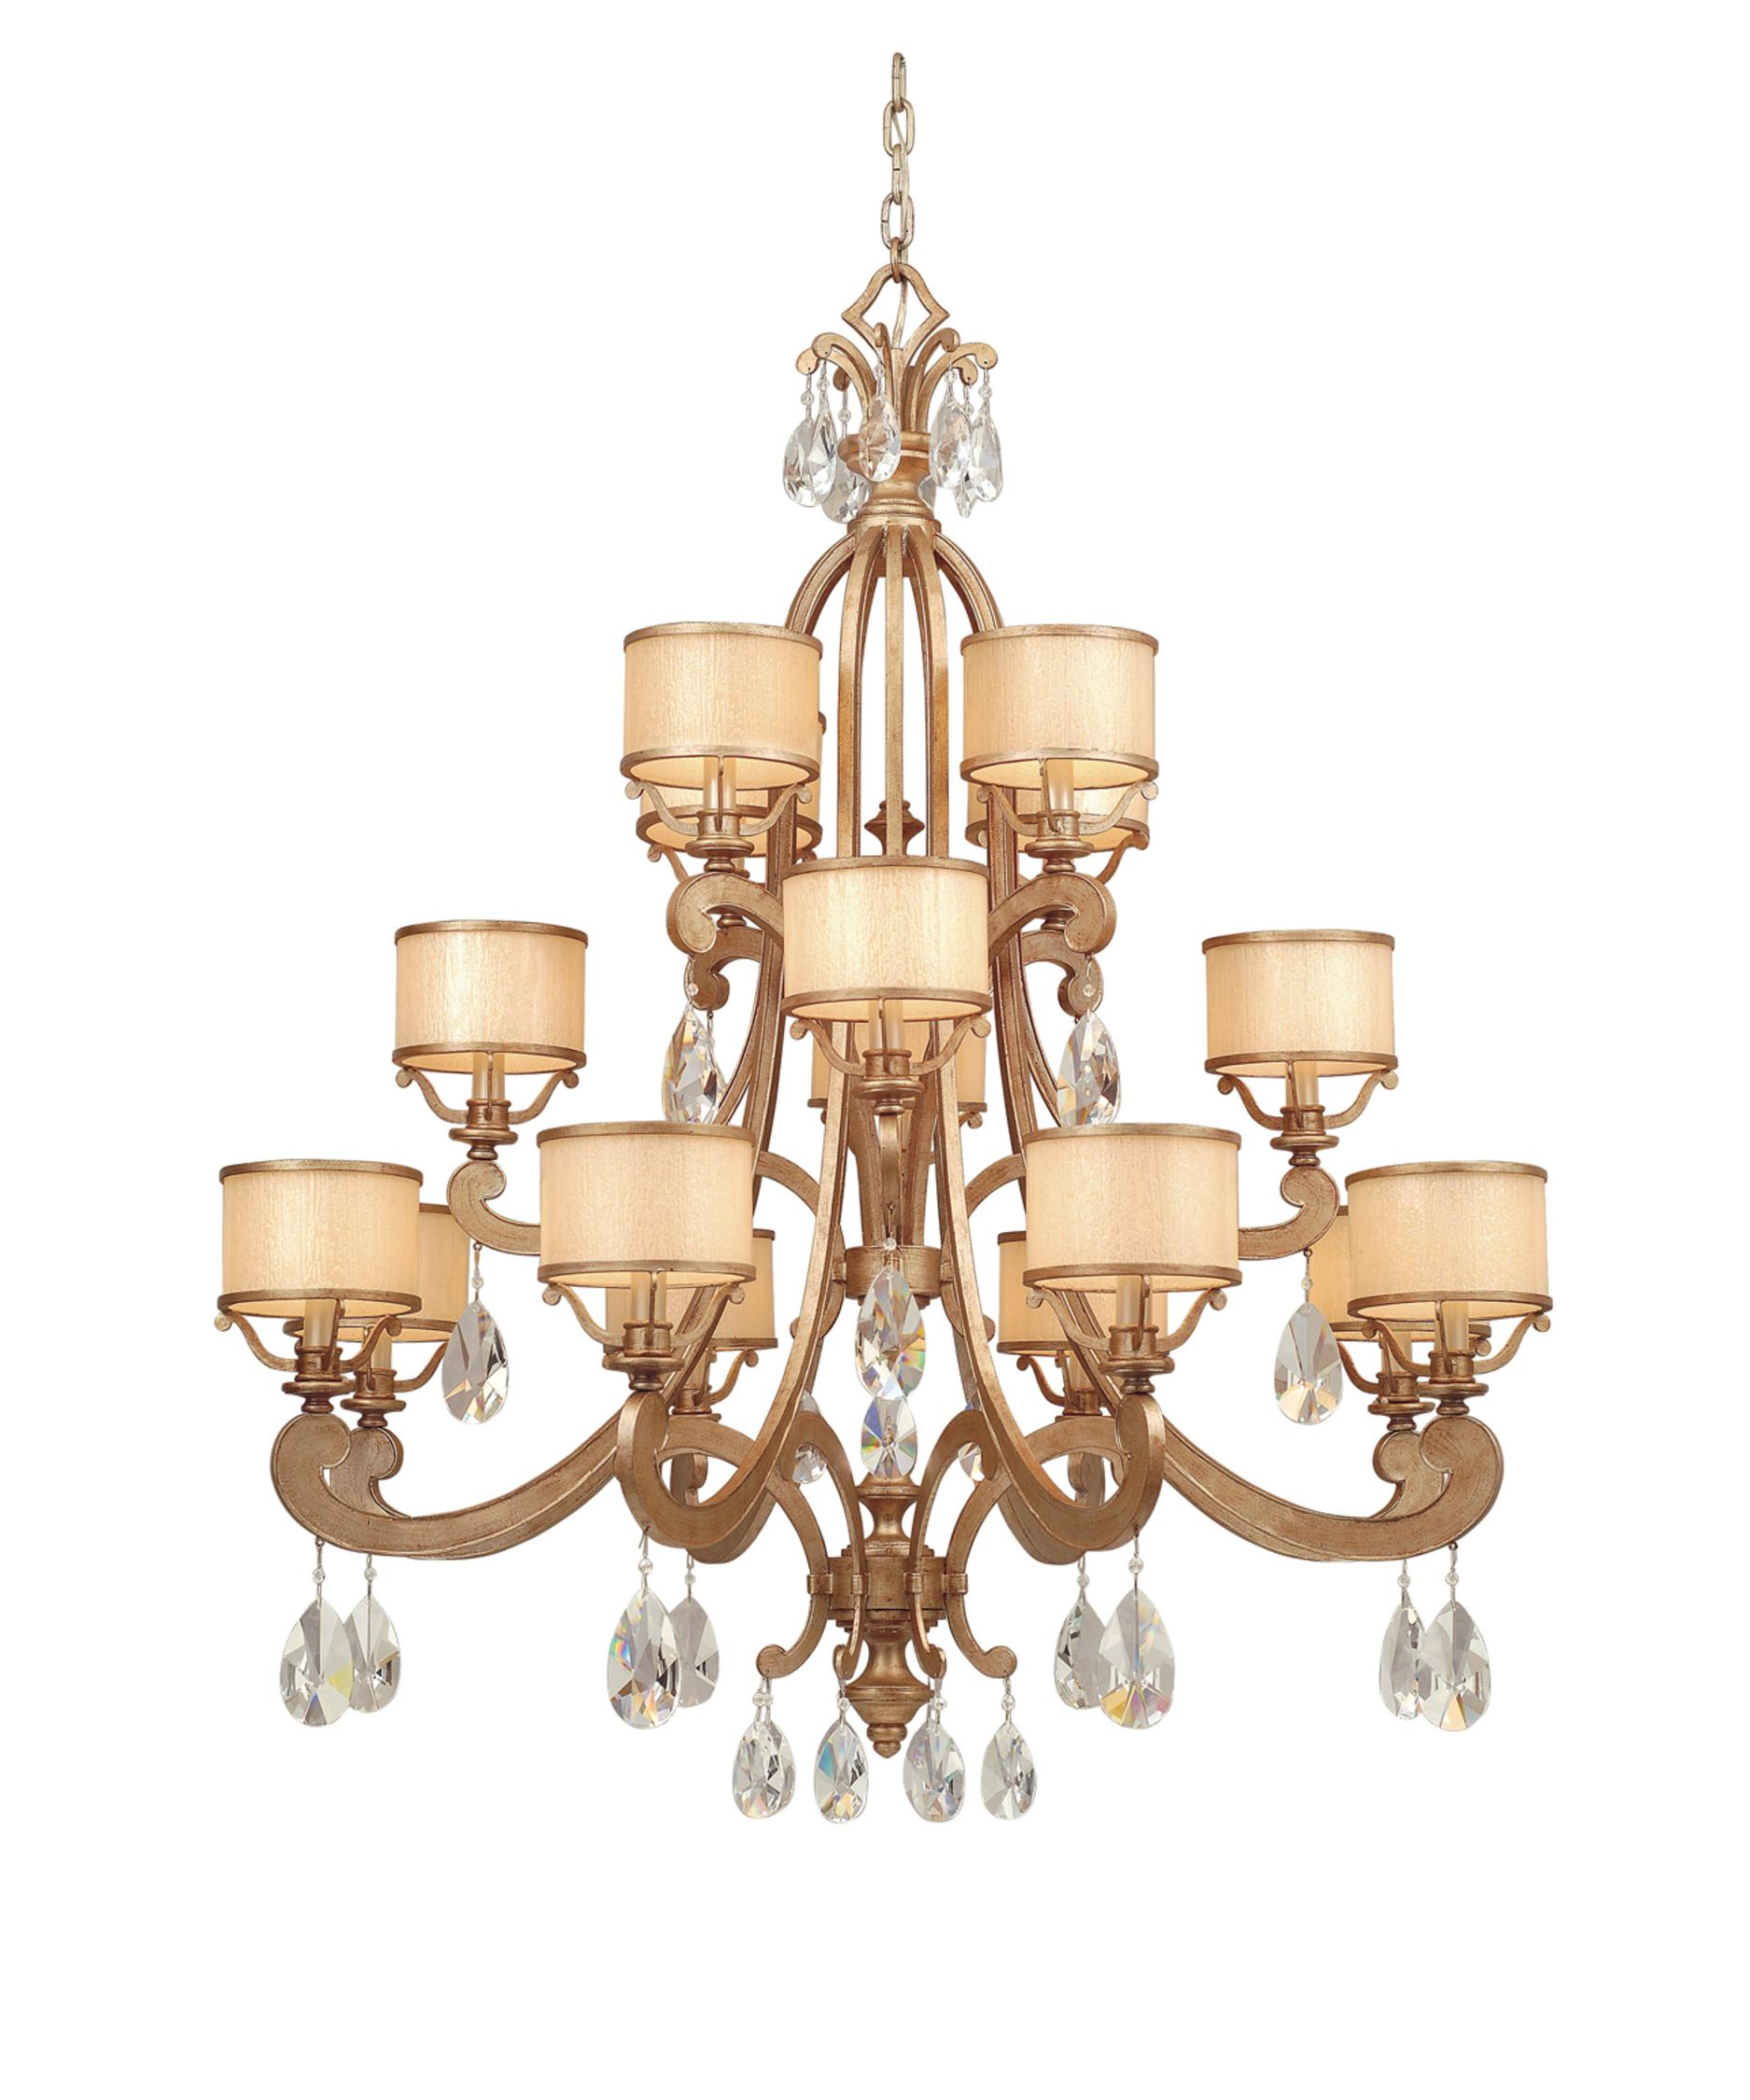 shown in antique roman silver finish clear crystals crystal cream ice glass and crystal - Corbett Lighting